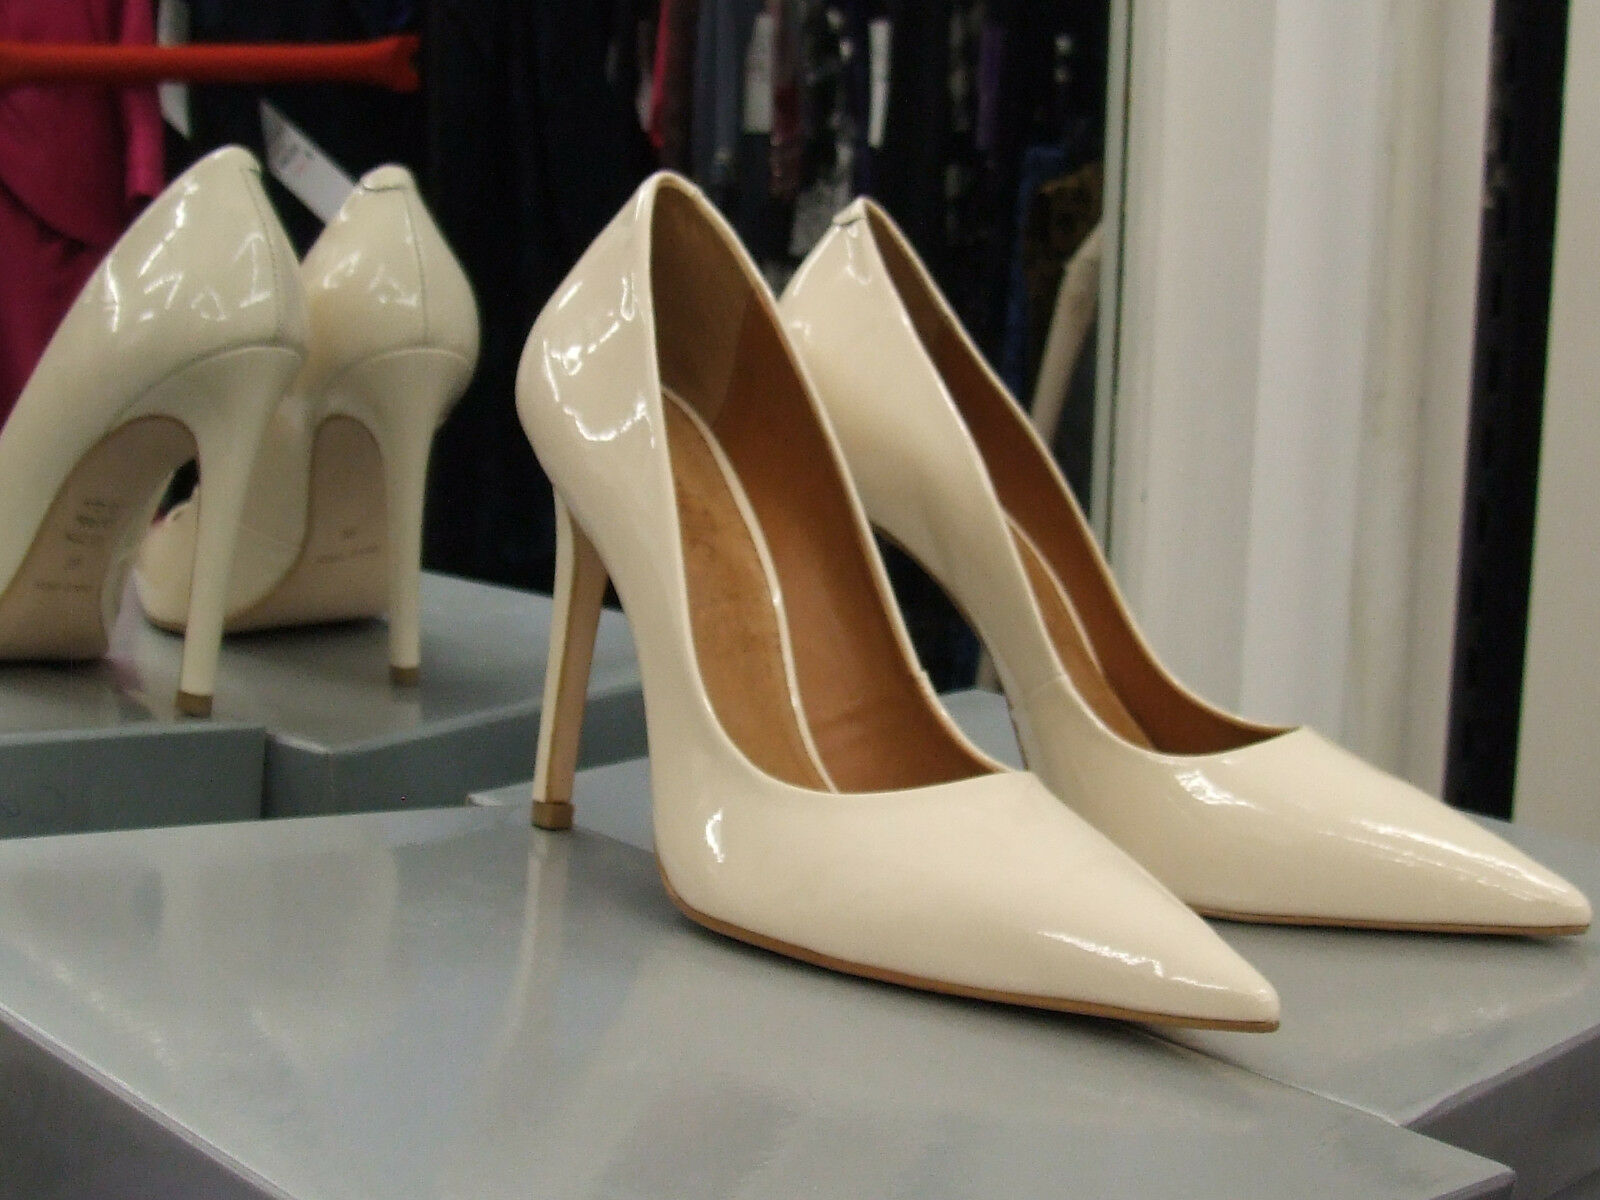 Cecille BNIB UK UK UK 6 Exquisite Stiletto Heels Patent Cream Leder Eve Schuhes EU 39 cb3f1f